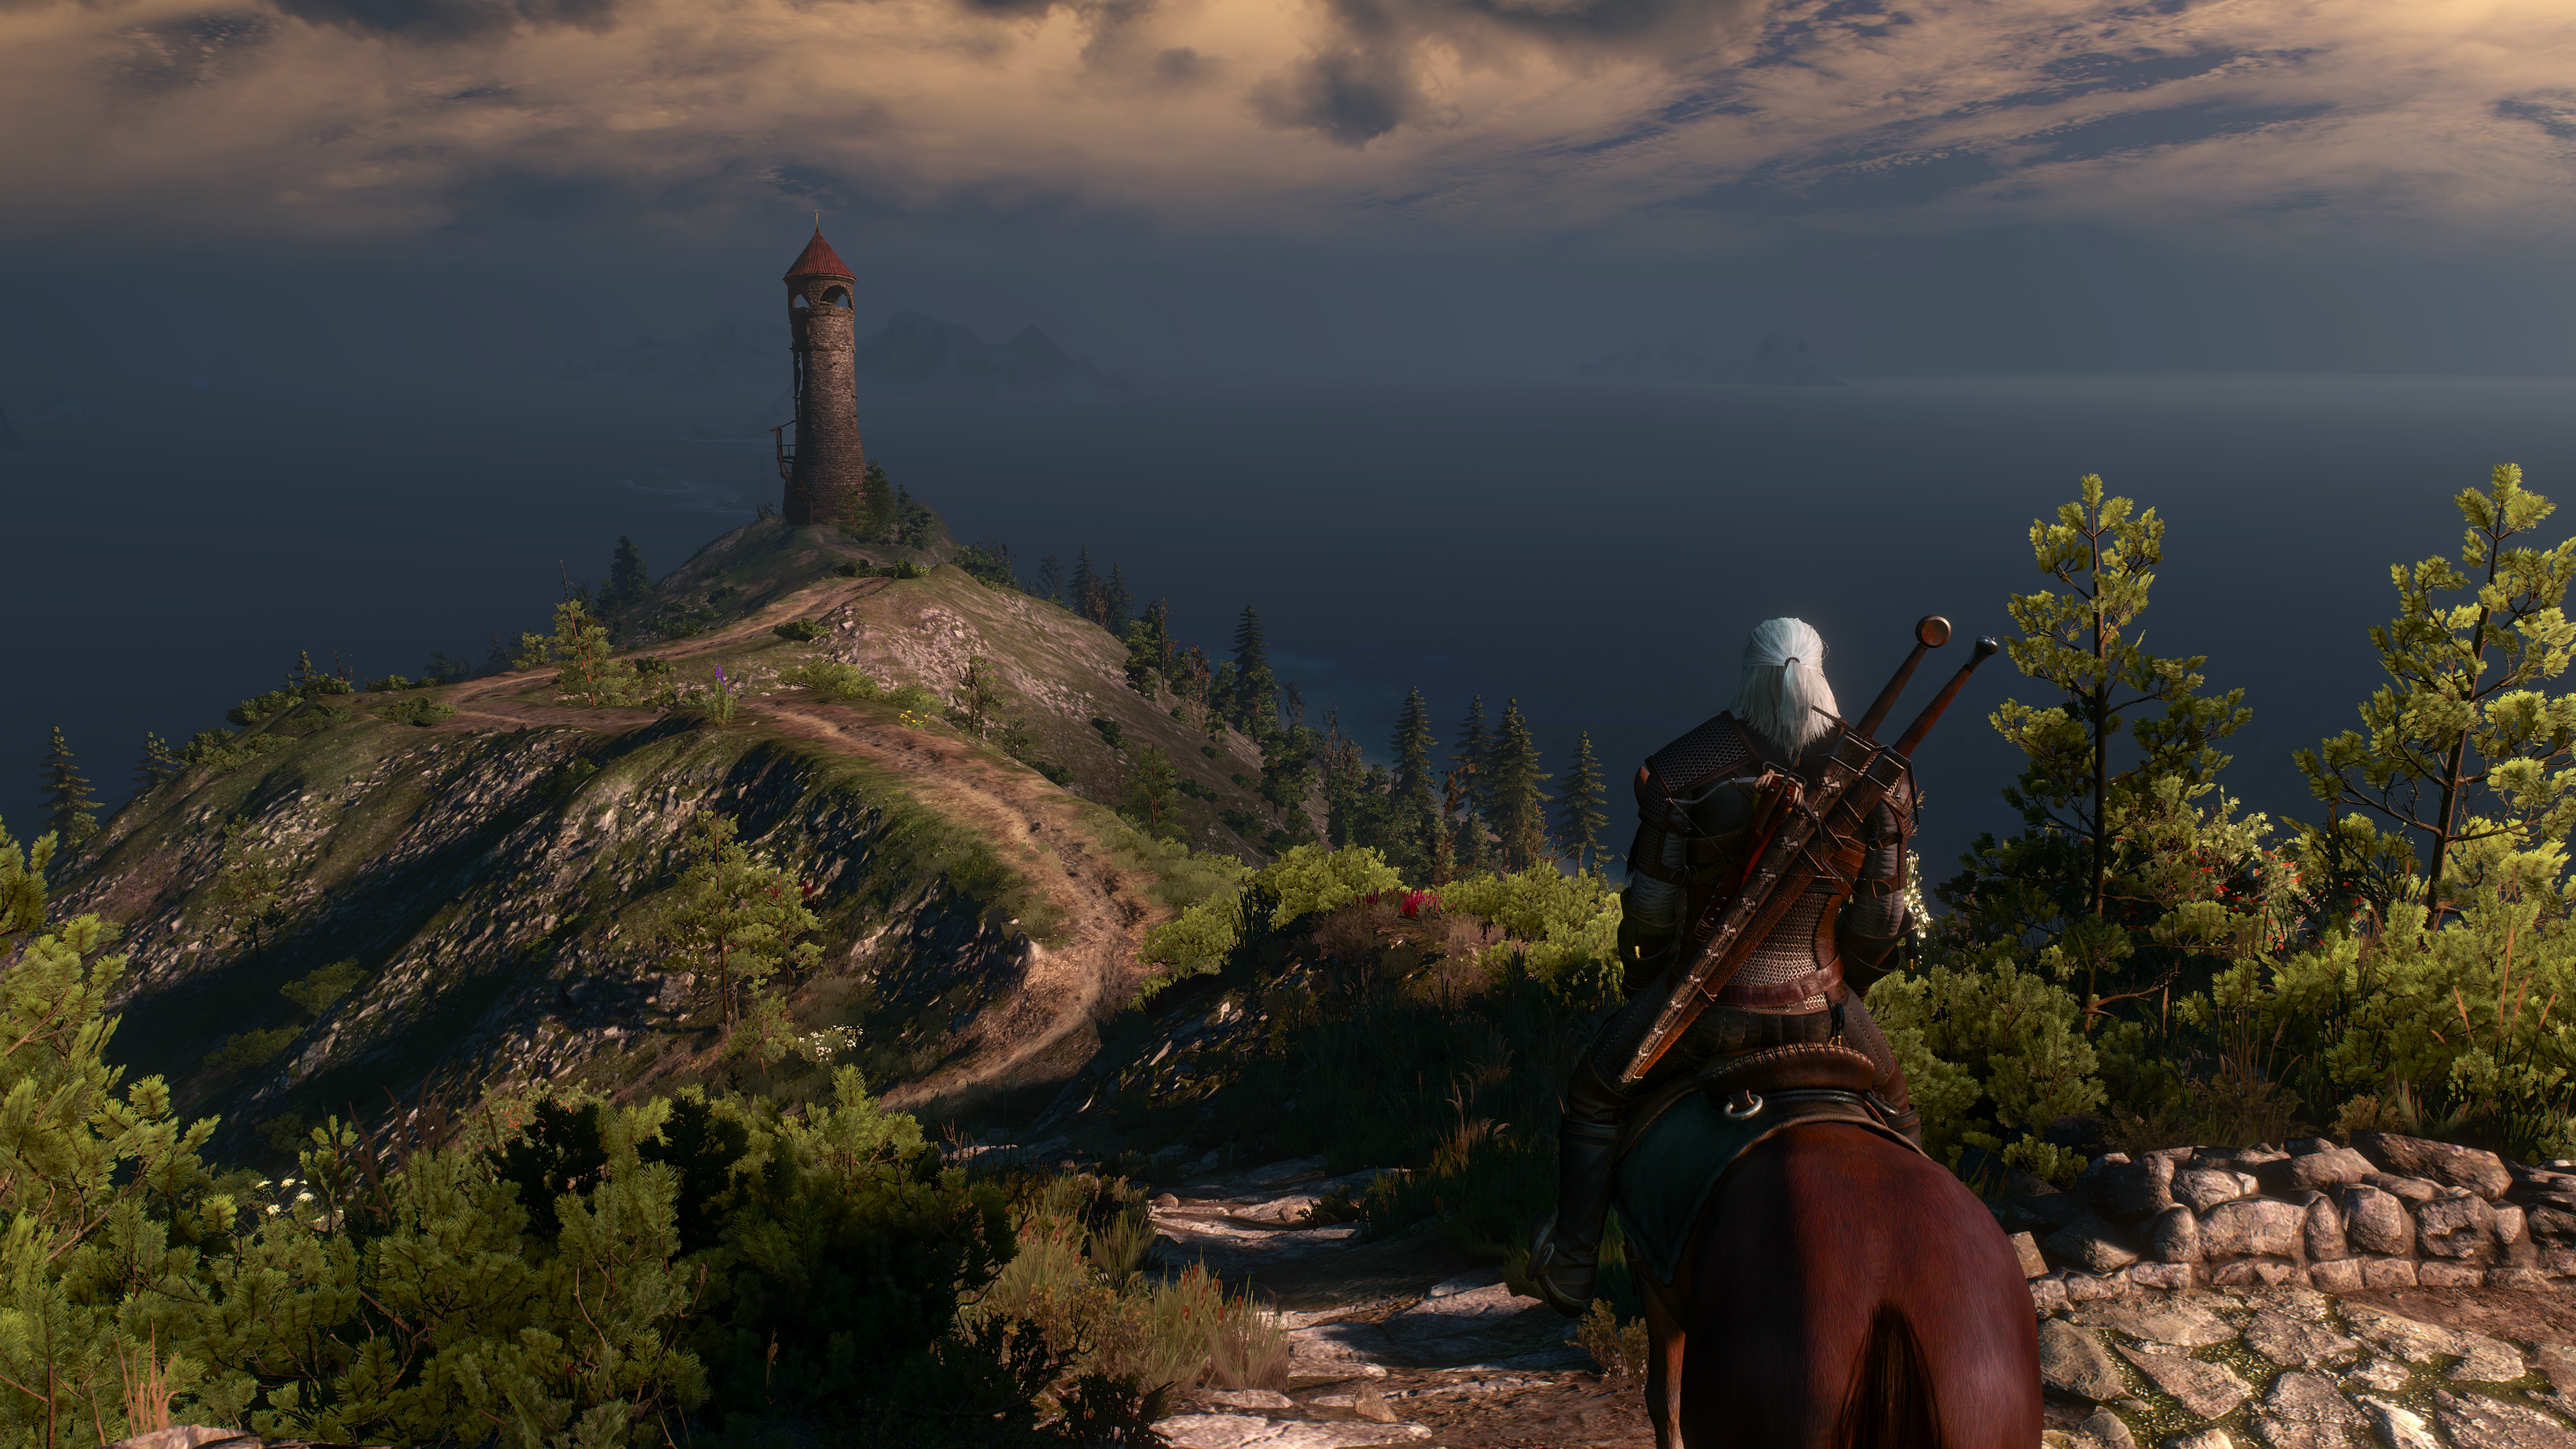 Building The Witcher 3 s huge wild fantasy world The Verge